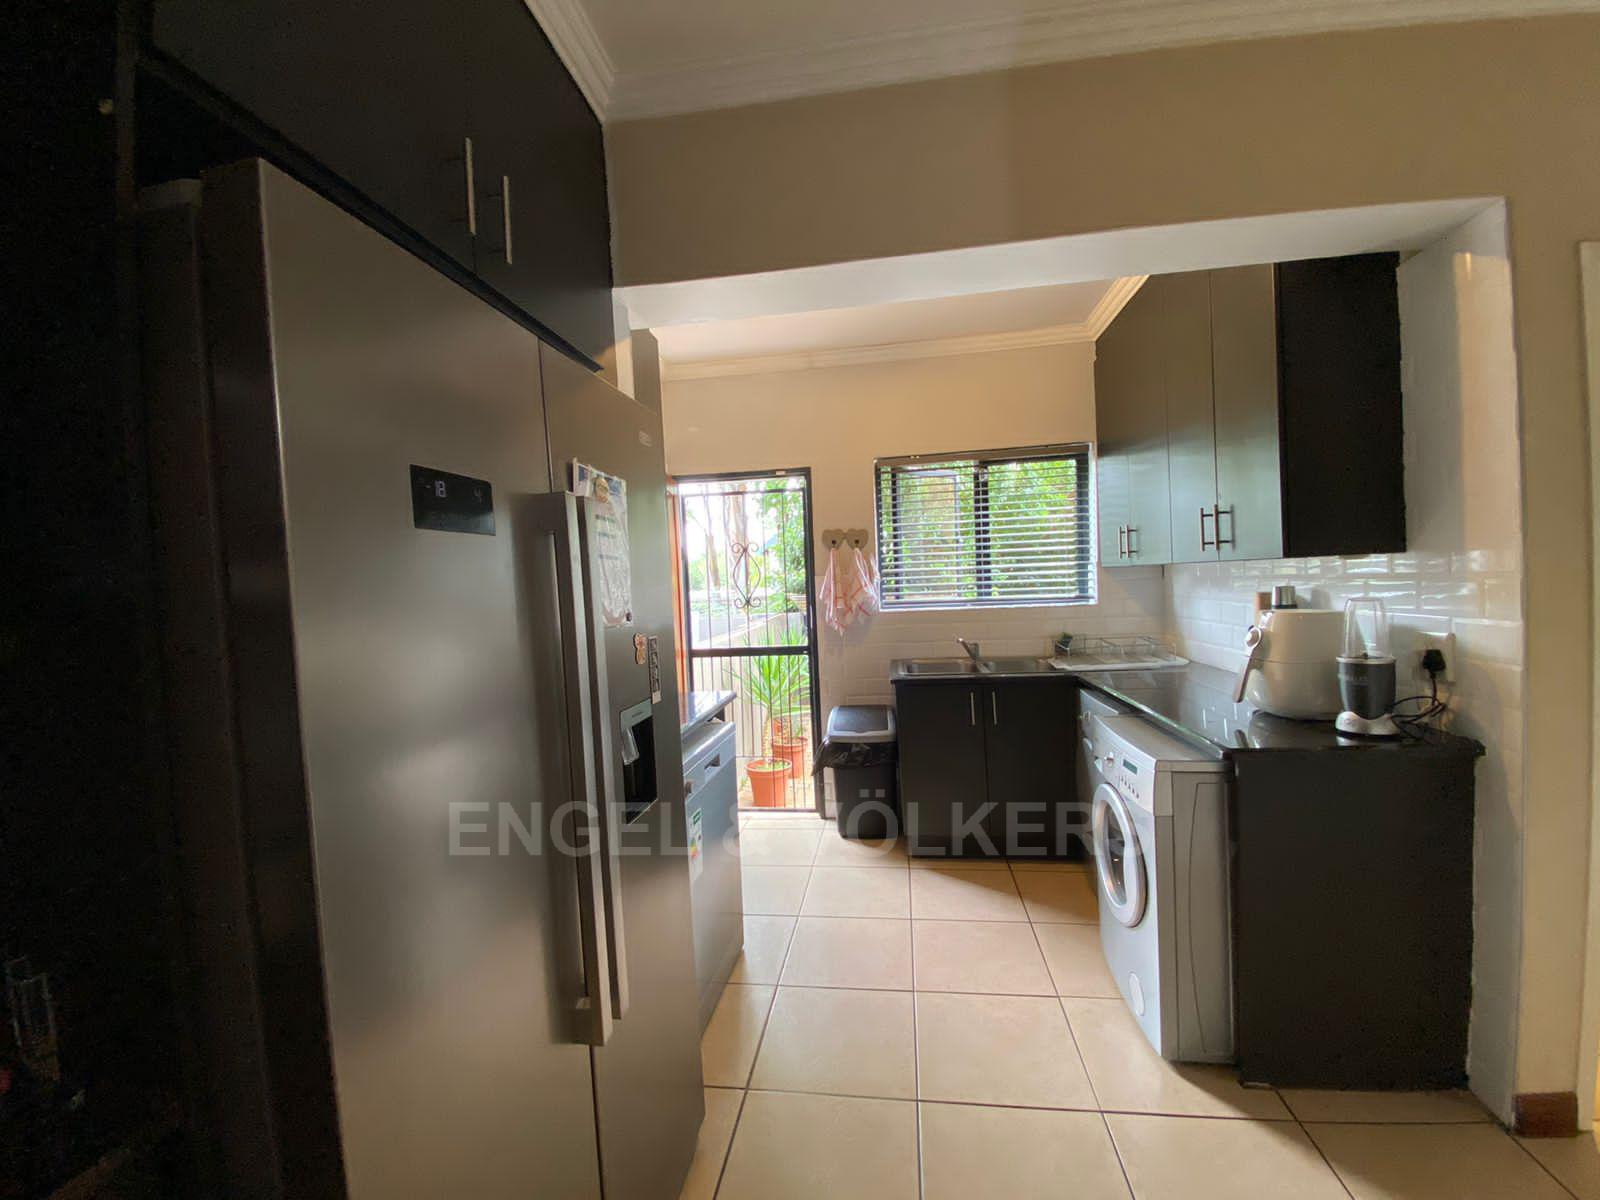 House in Melodie - Kitchen different angle